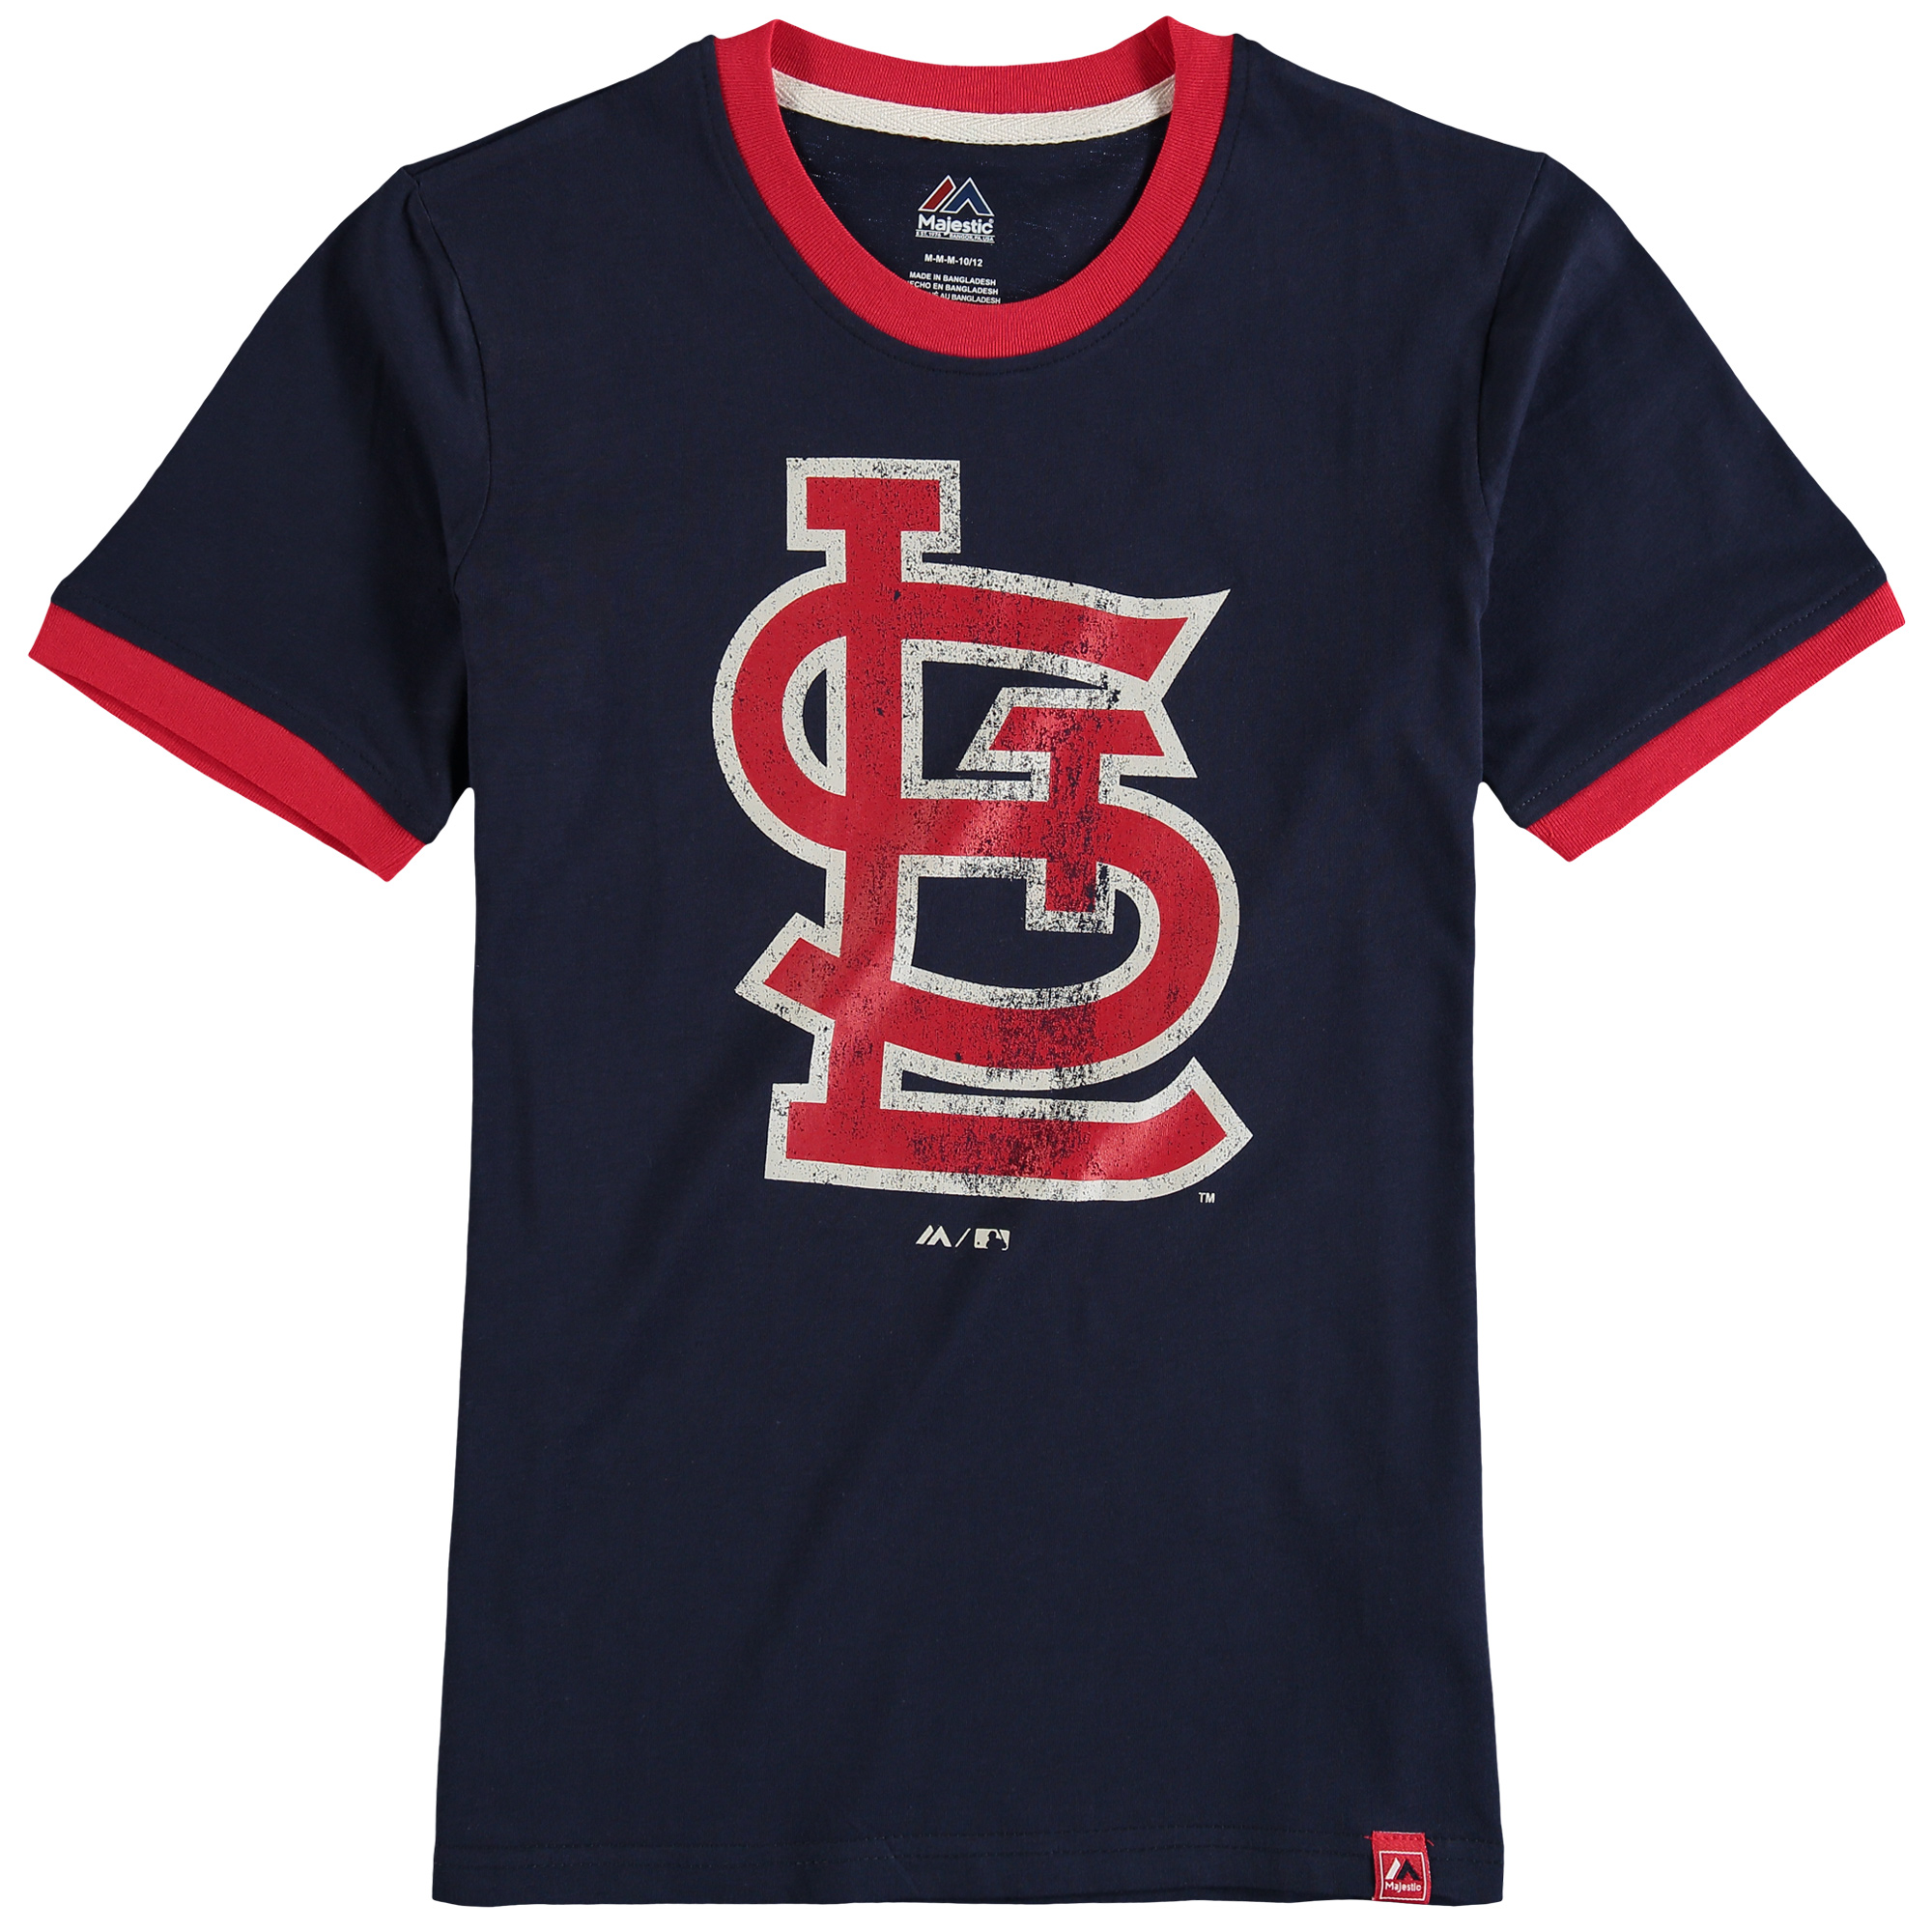 St. Louis Cardinals Majestic Youth Baseball Stripes Ring T-Shirt - Navy